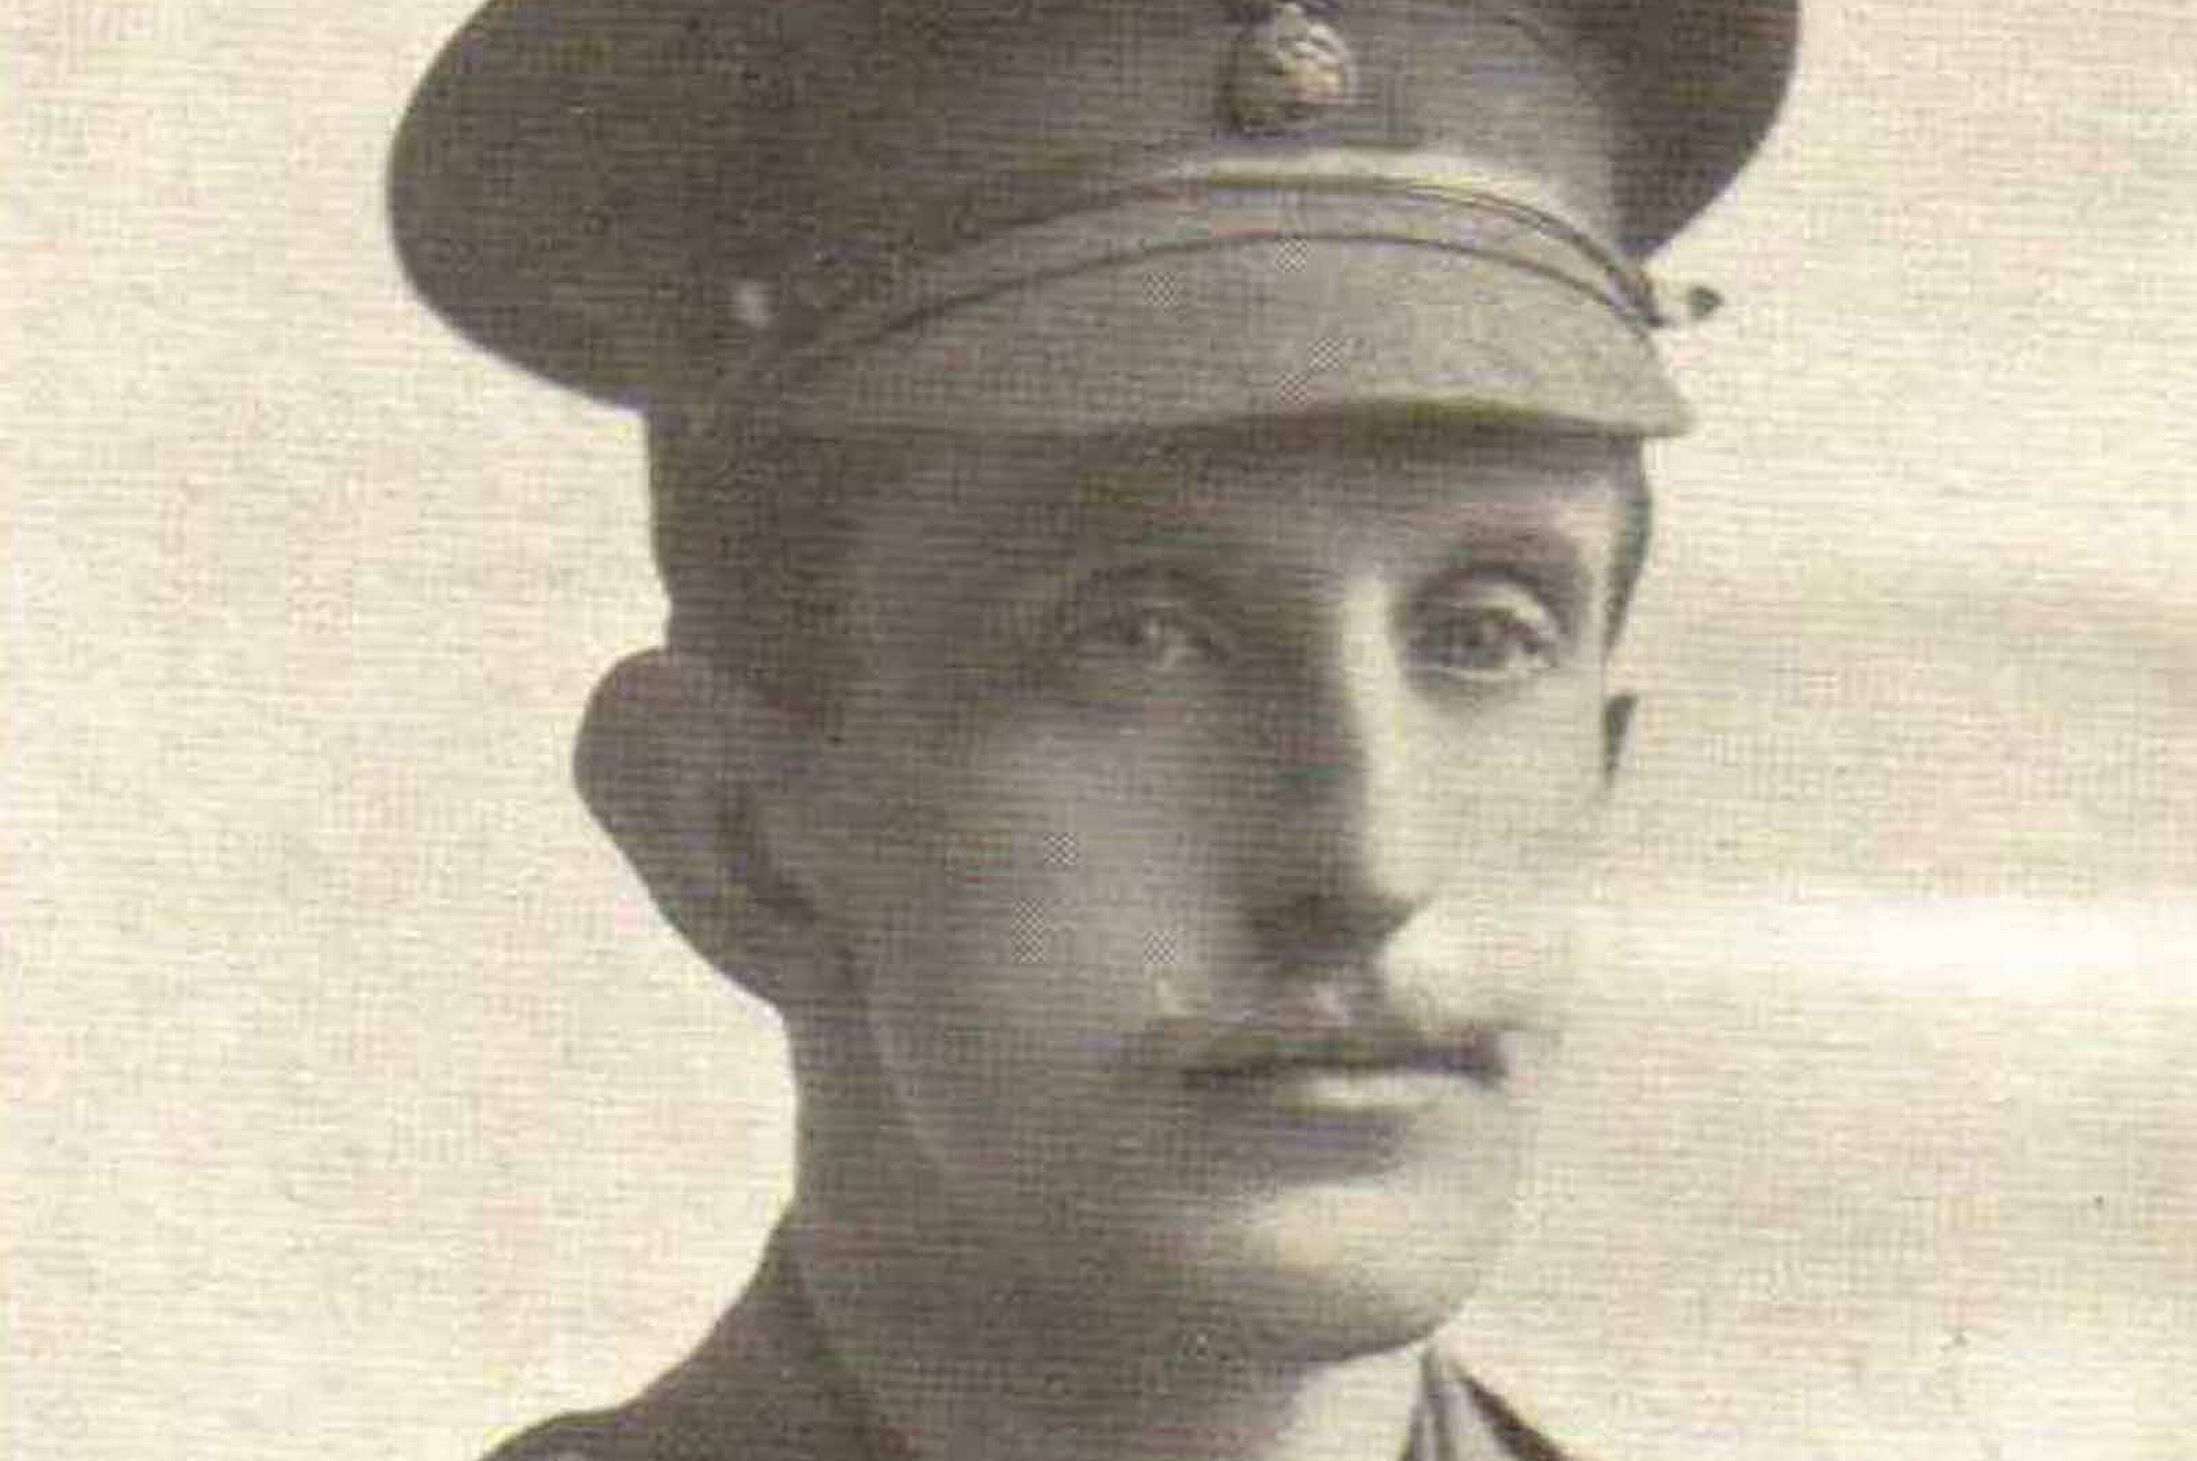 World War I Regiment S Appeal For Photos Of Soldiers Killed In Action World War World War One World War I